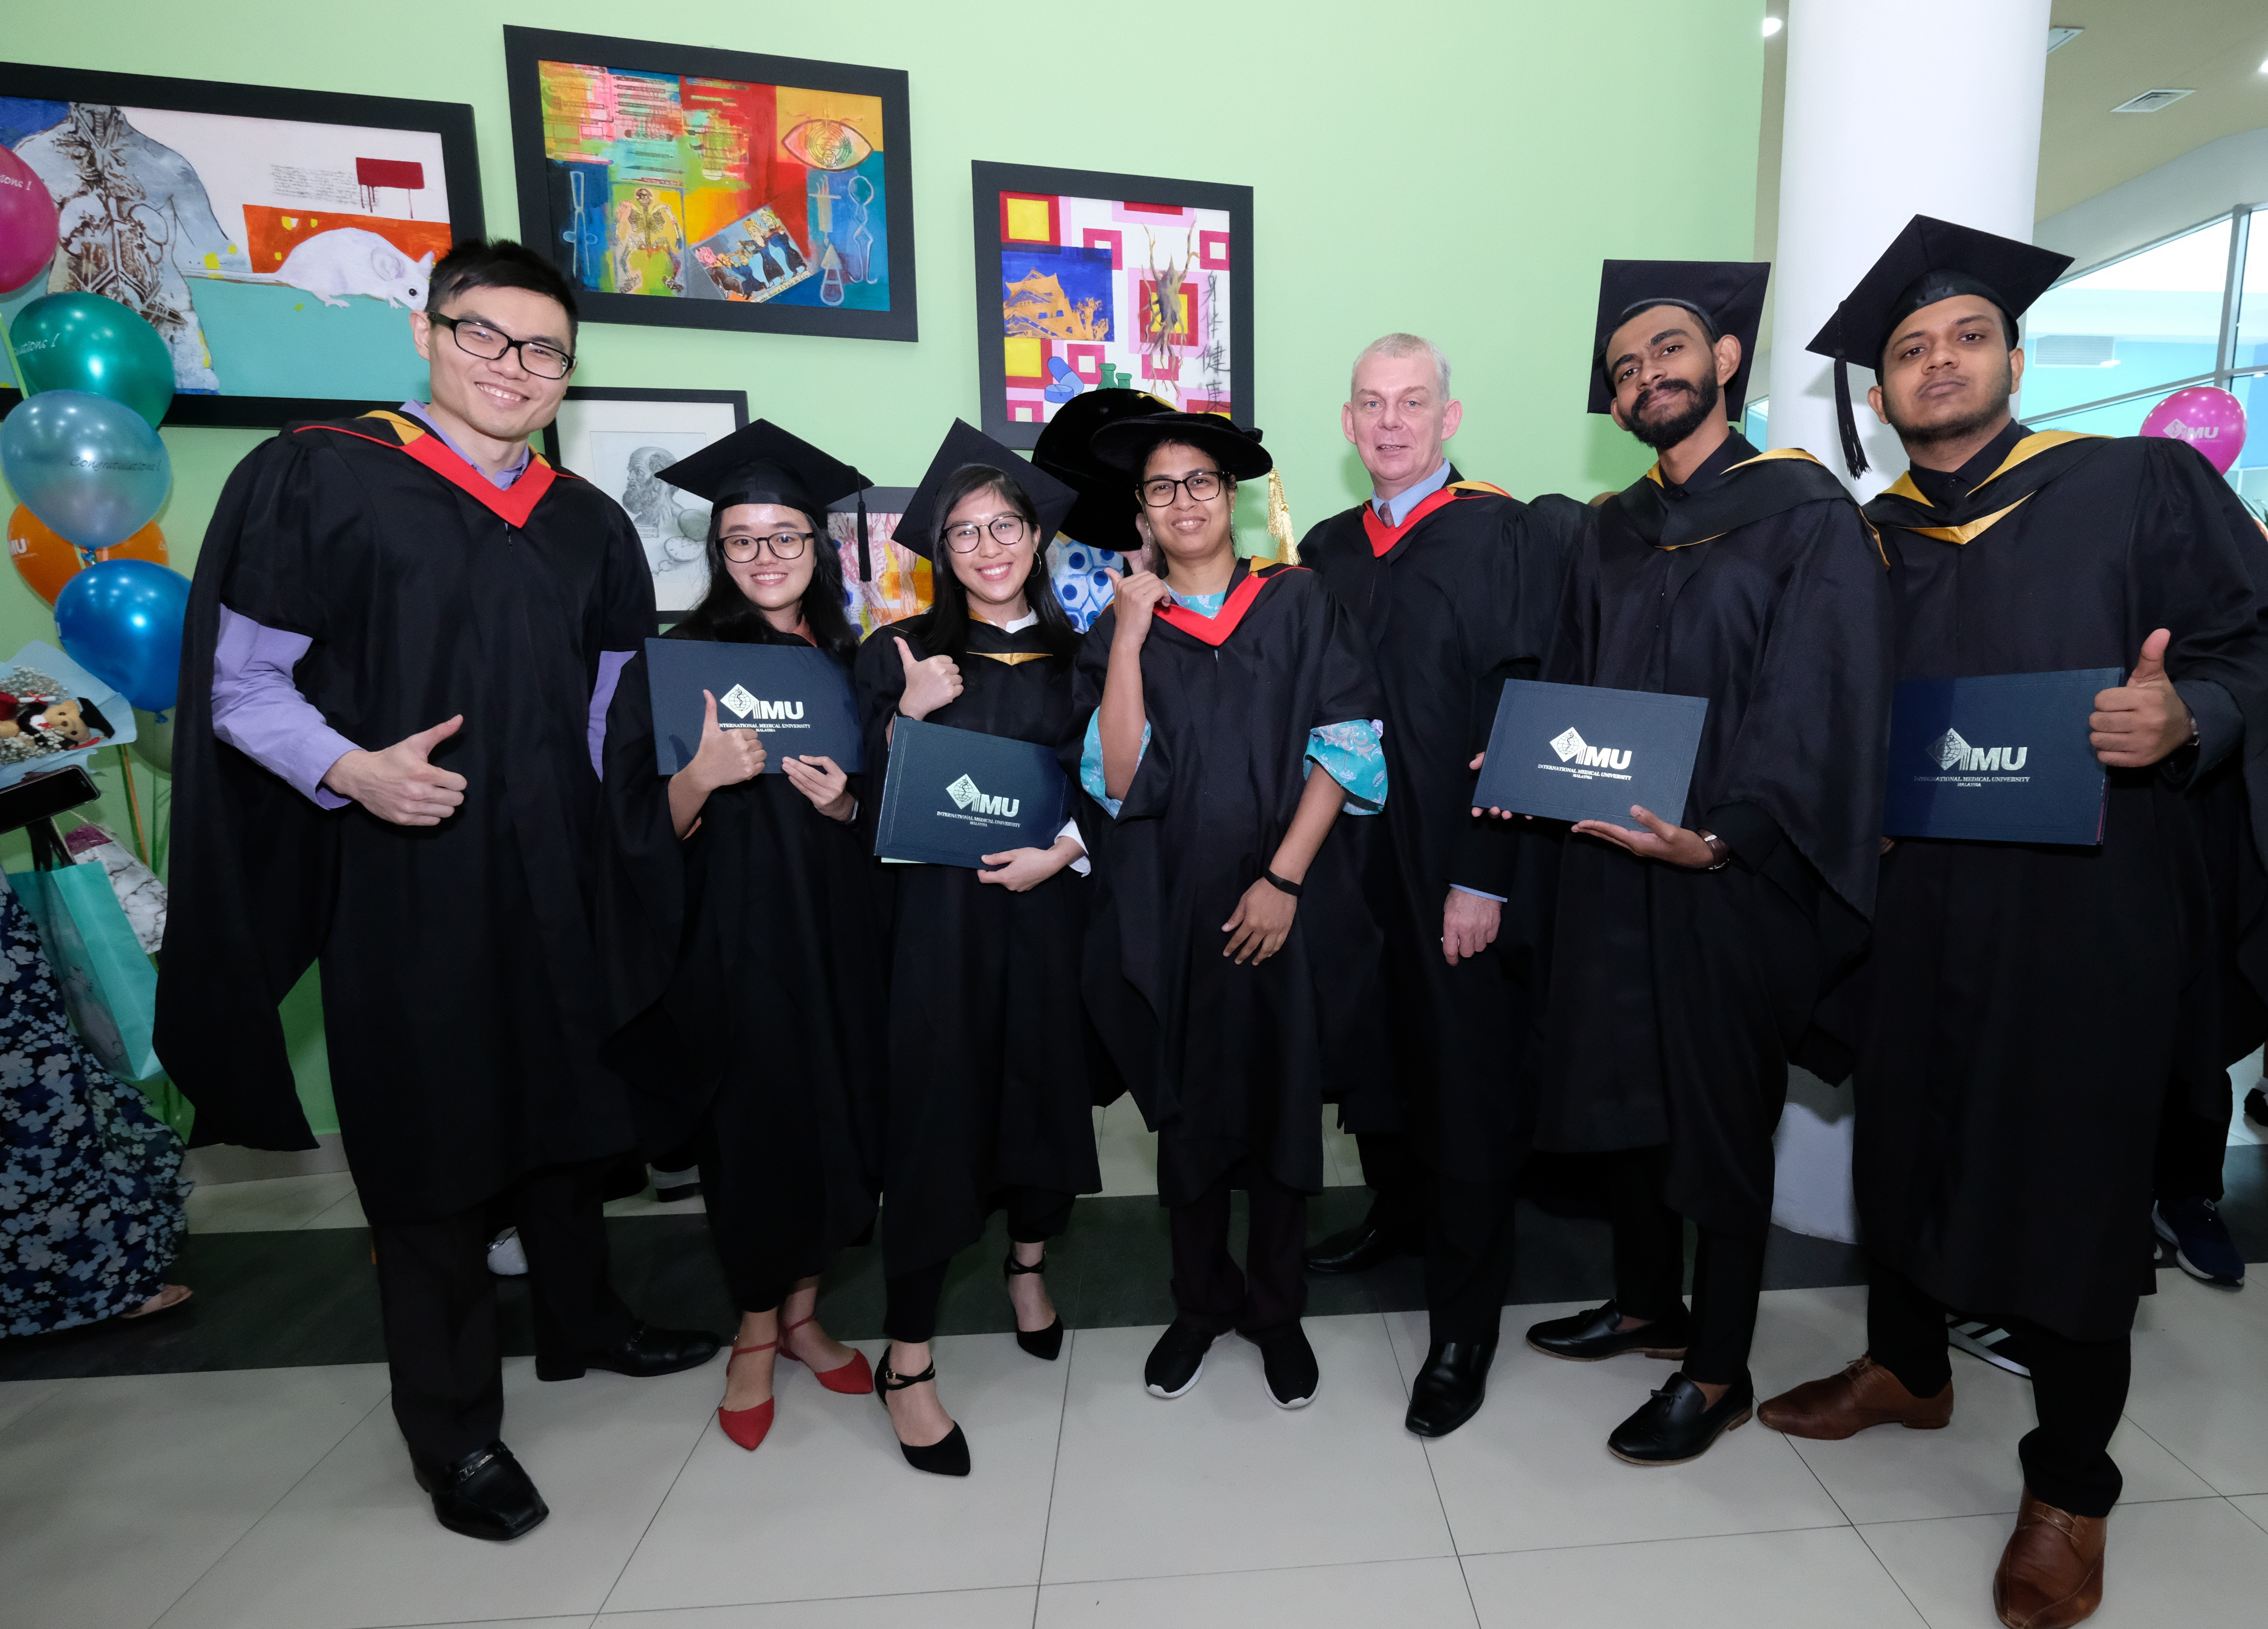 8 made history at this convocation as IMU's first cohort to receive the Postgraduate Certificate of Business Administration in Healthcare Management.